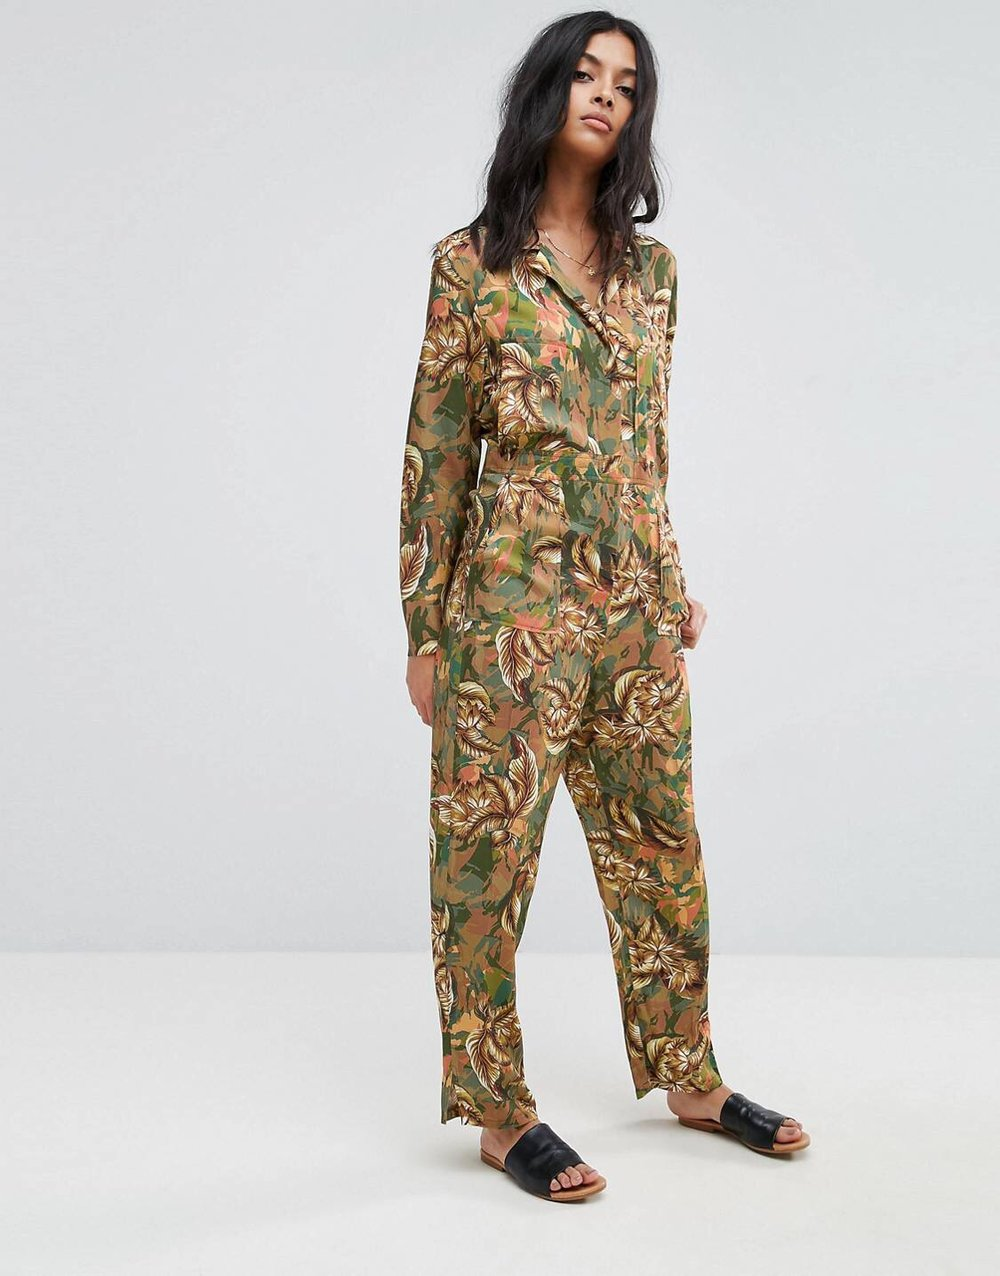 A modest girls dream - I love - again, ima write on jumpsuits I'm obsessing over soon